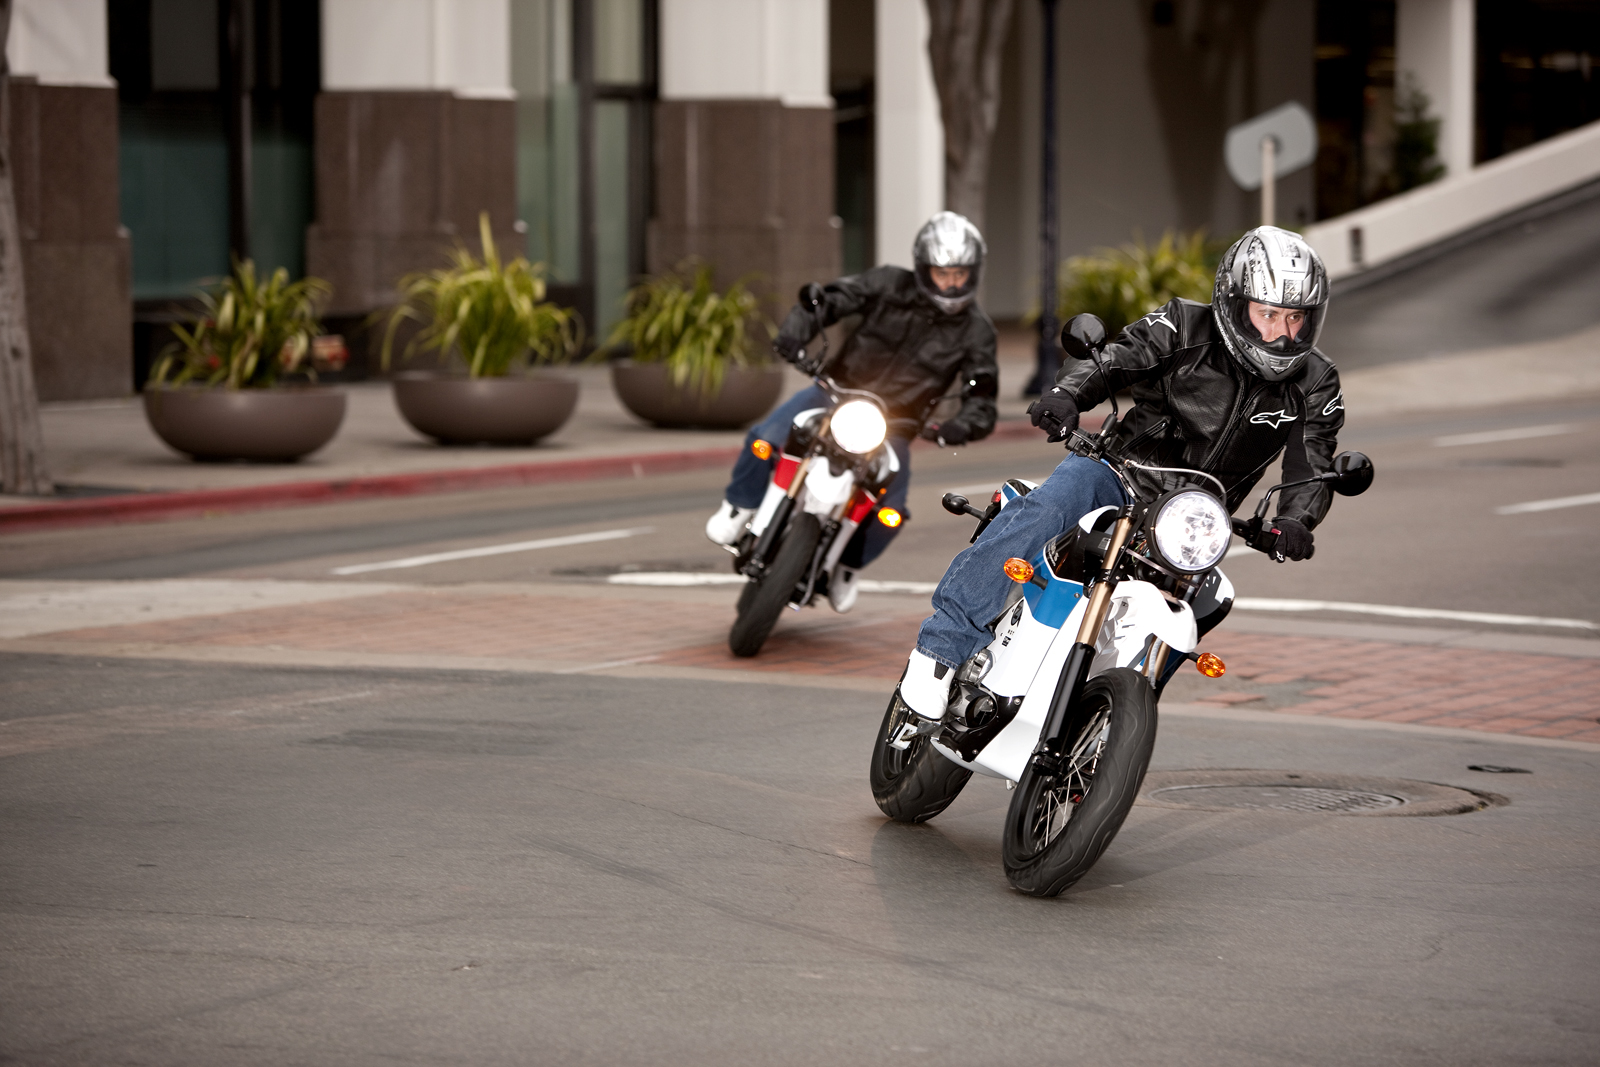 '.2010 Zero S Electric Motorcycle: San Diego - Sideways Around Corner.'